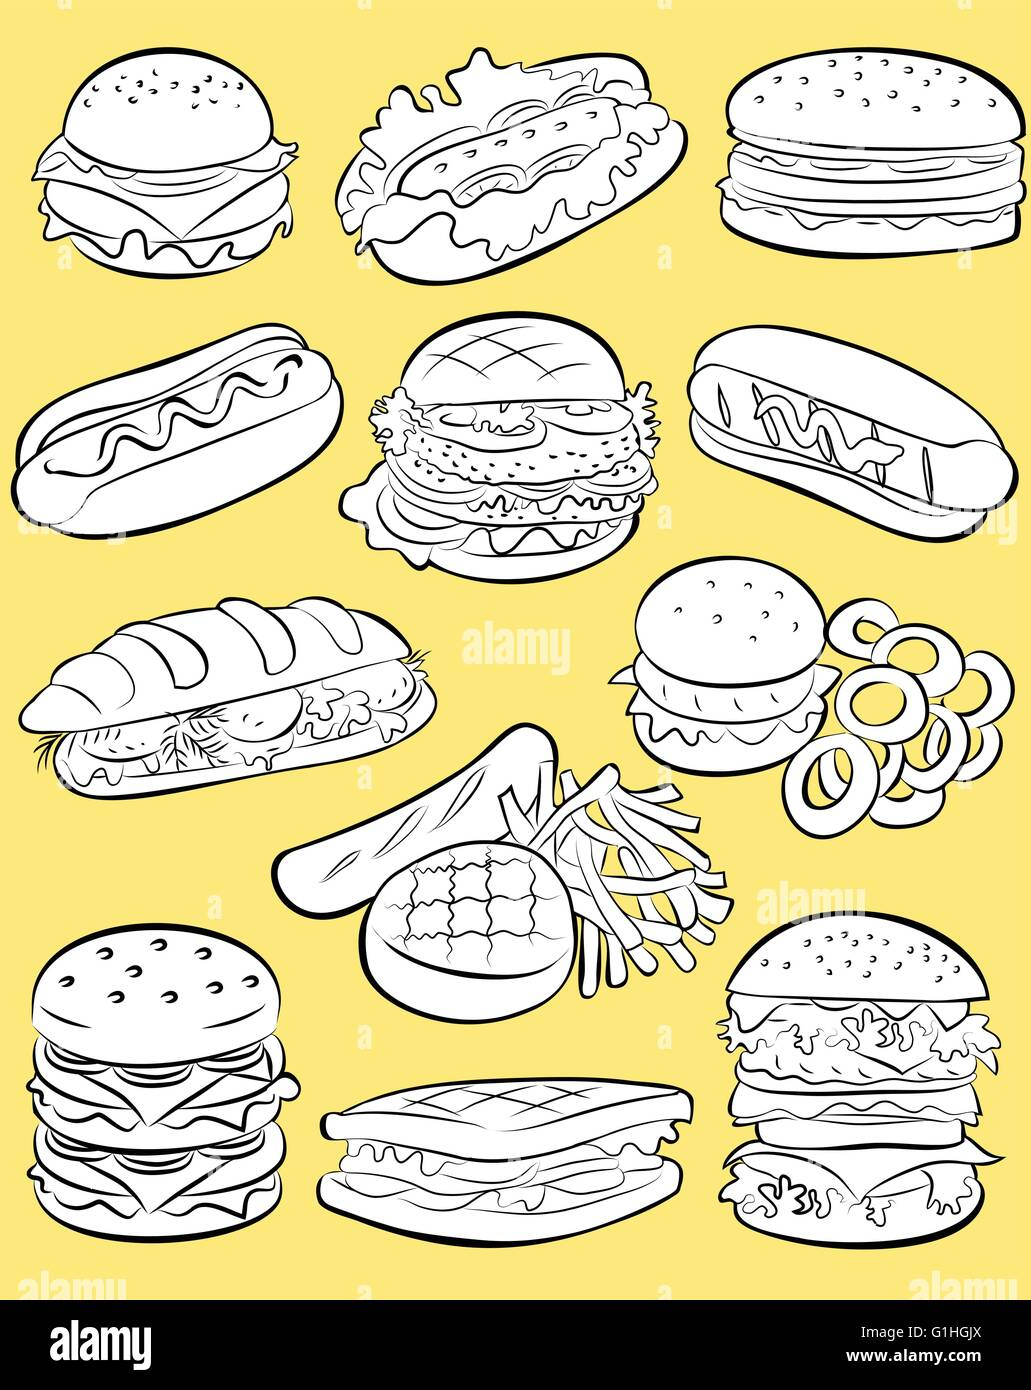 vector illustration of fast food collection in line art mode on yellow background - Stock Vector